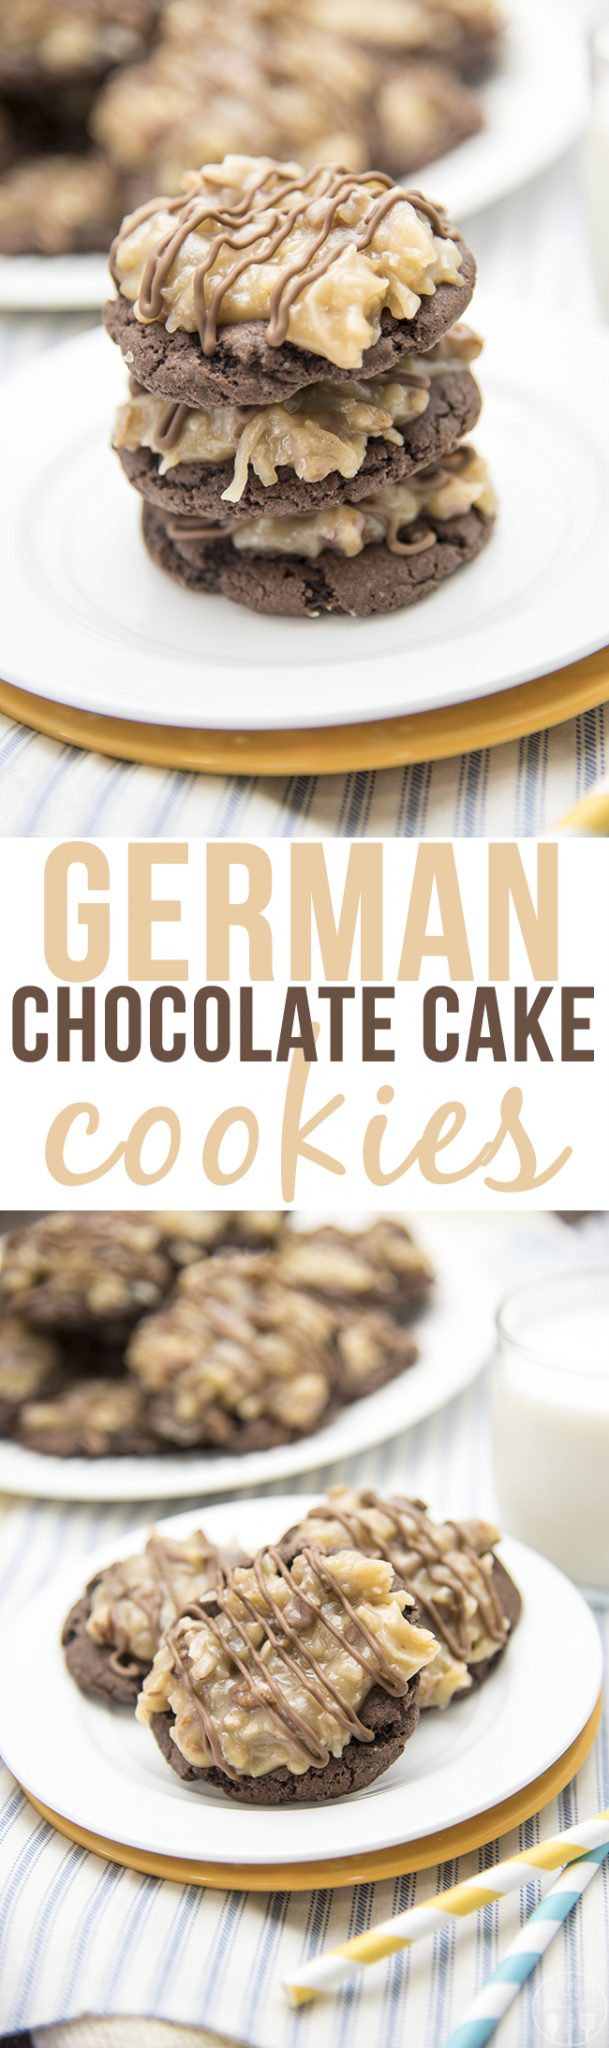 German Chocolate Cake Cookies - Like Mother Like Daughter